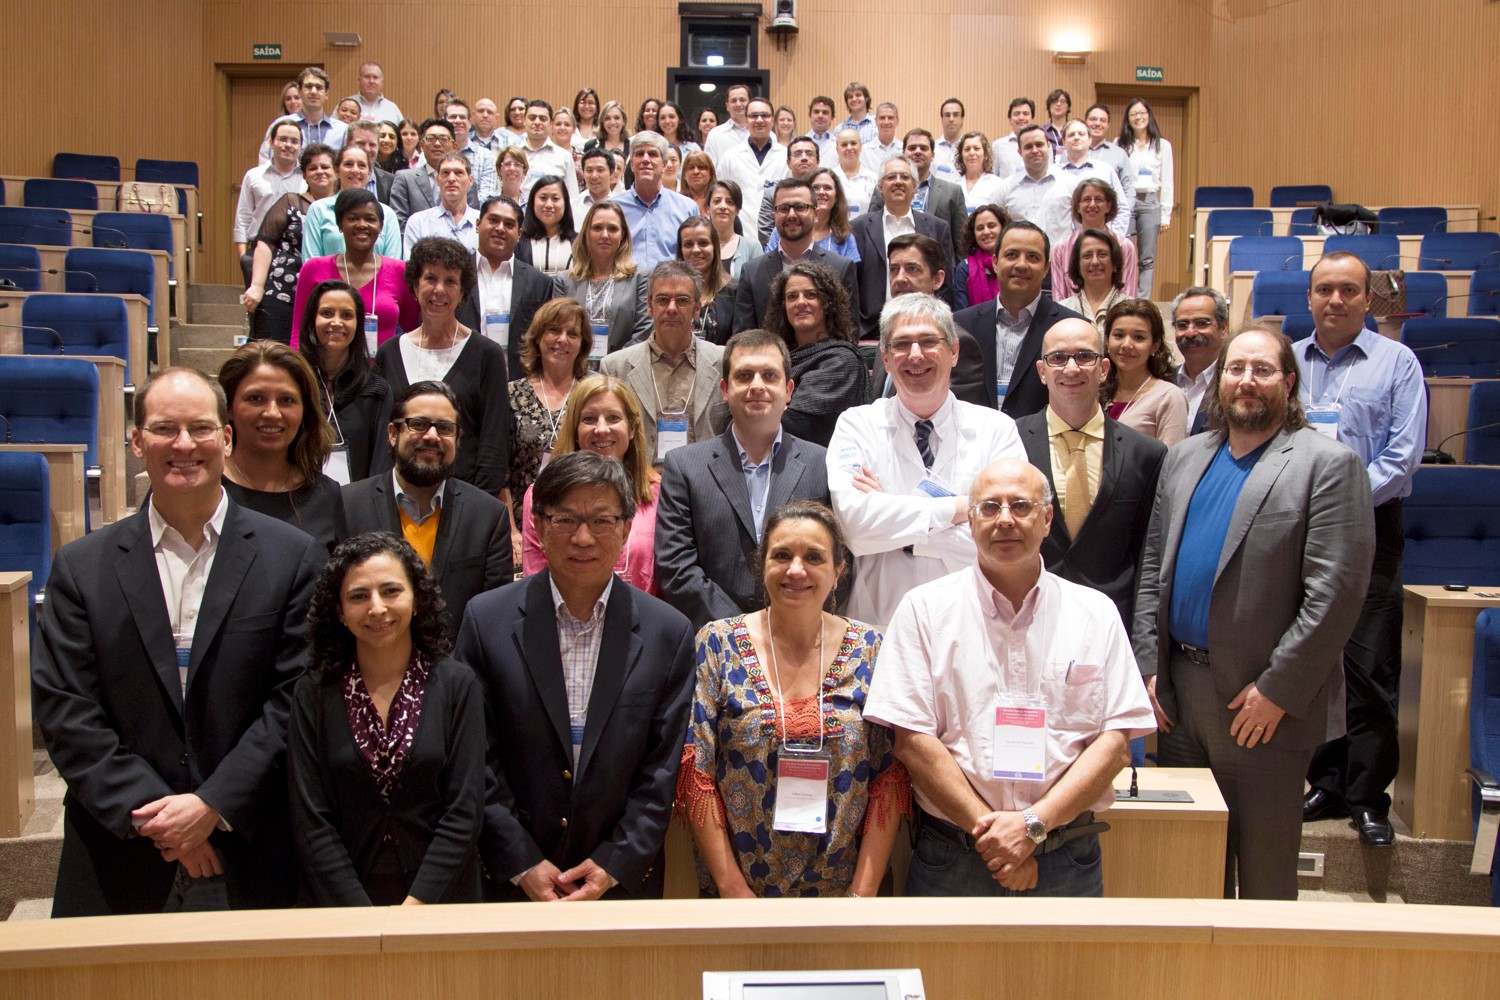 Symposium attendees worked together to improve cervical cancer prevention and treatment in Latin America.